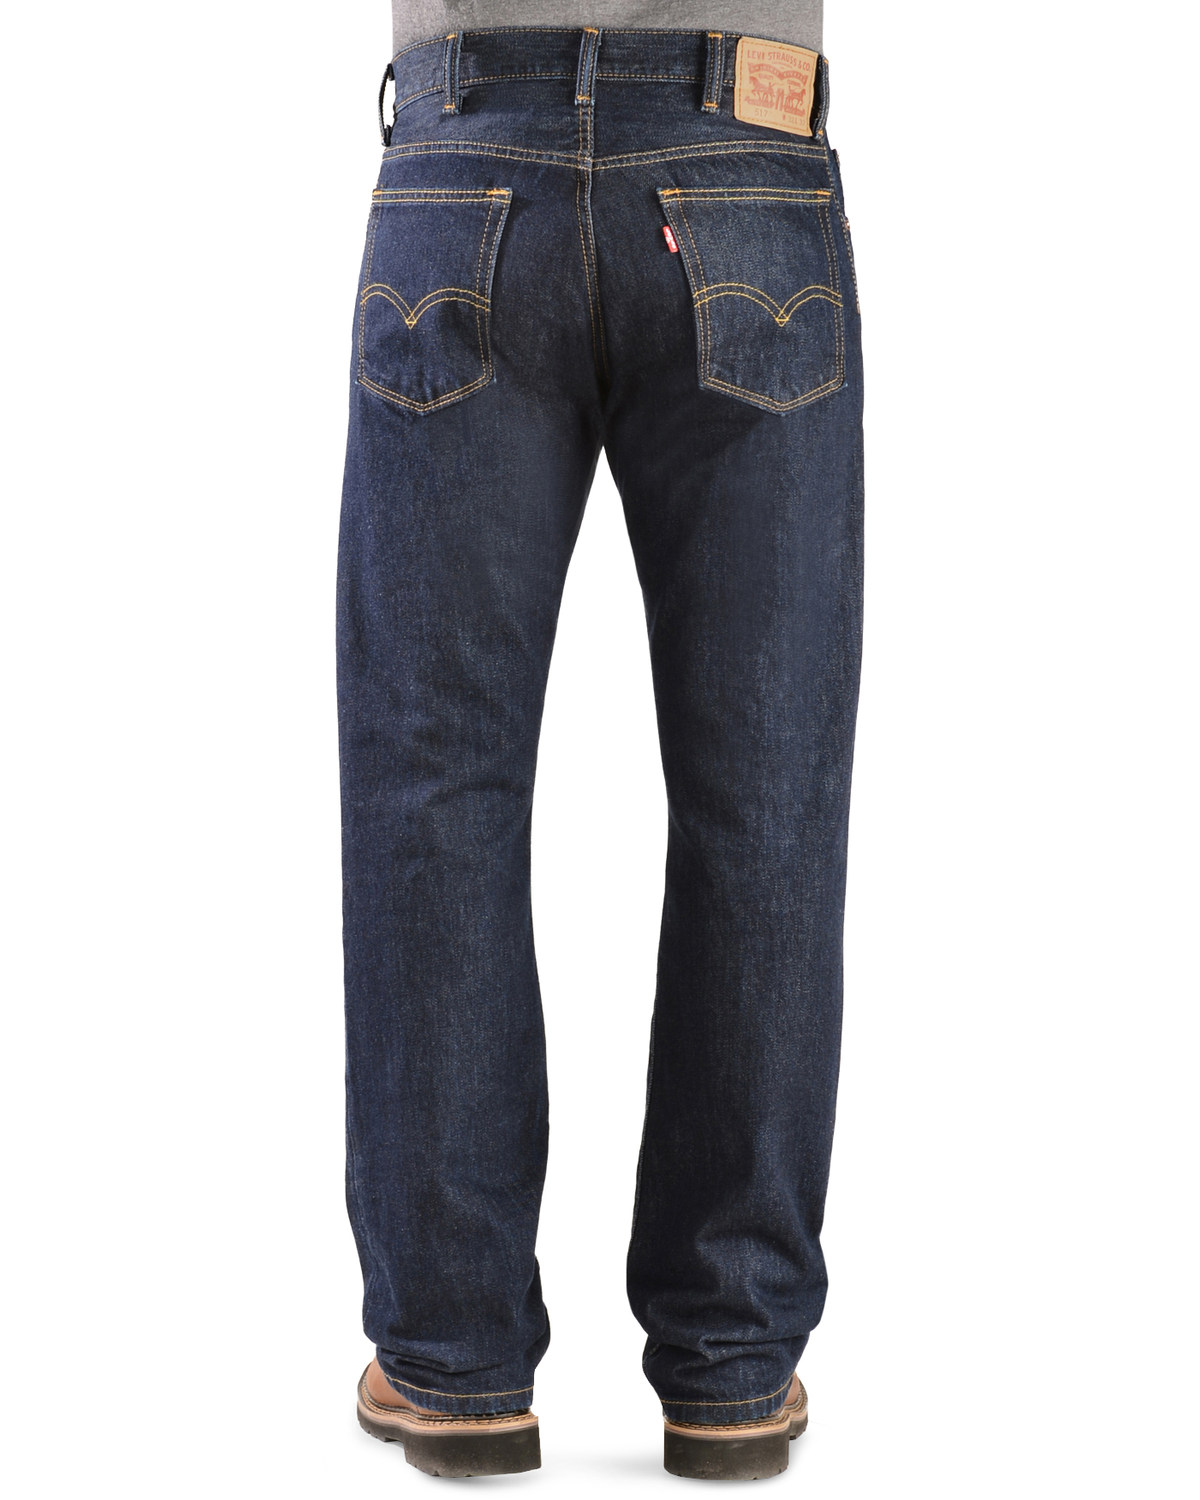 872e6c35008 Zoomed Image Levi's 517 Jeans - Slim Fit Boot Cut, Rinsed, ...